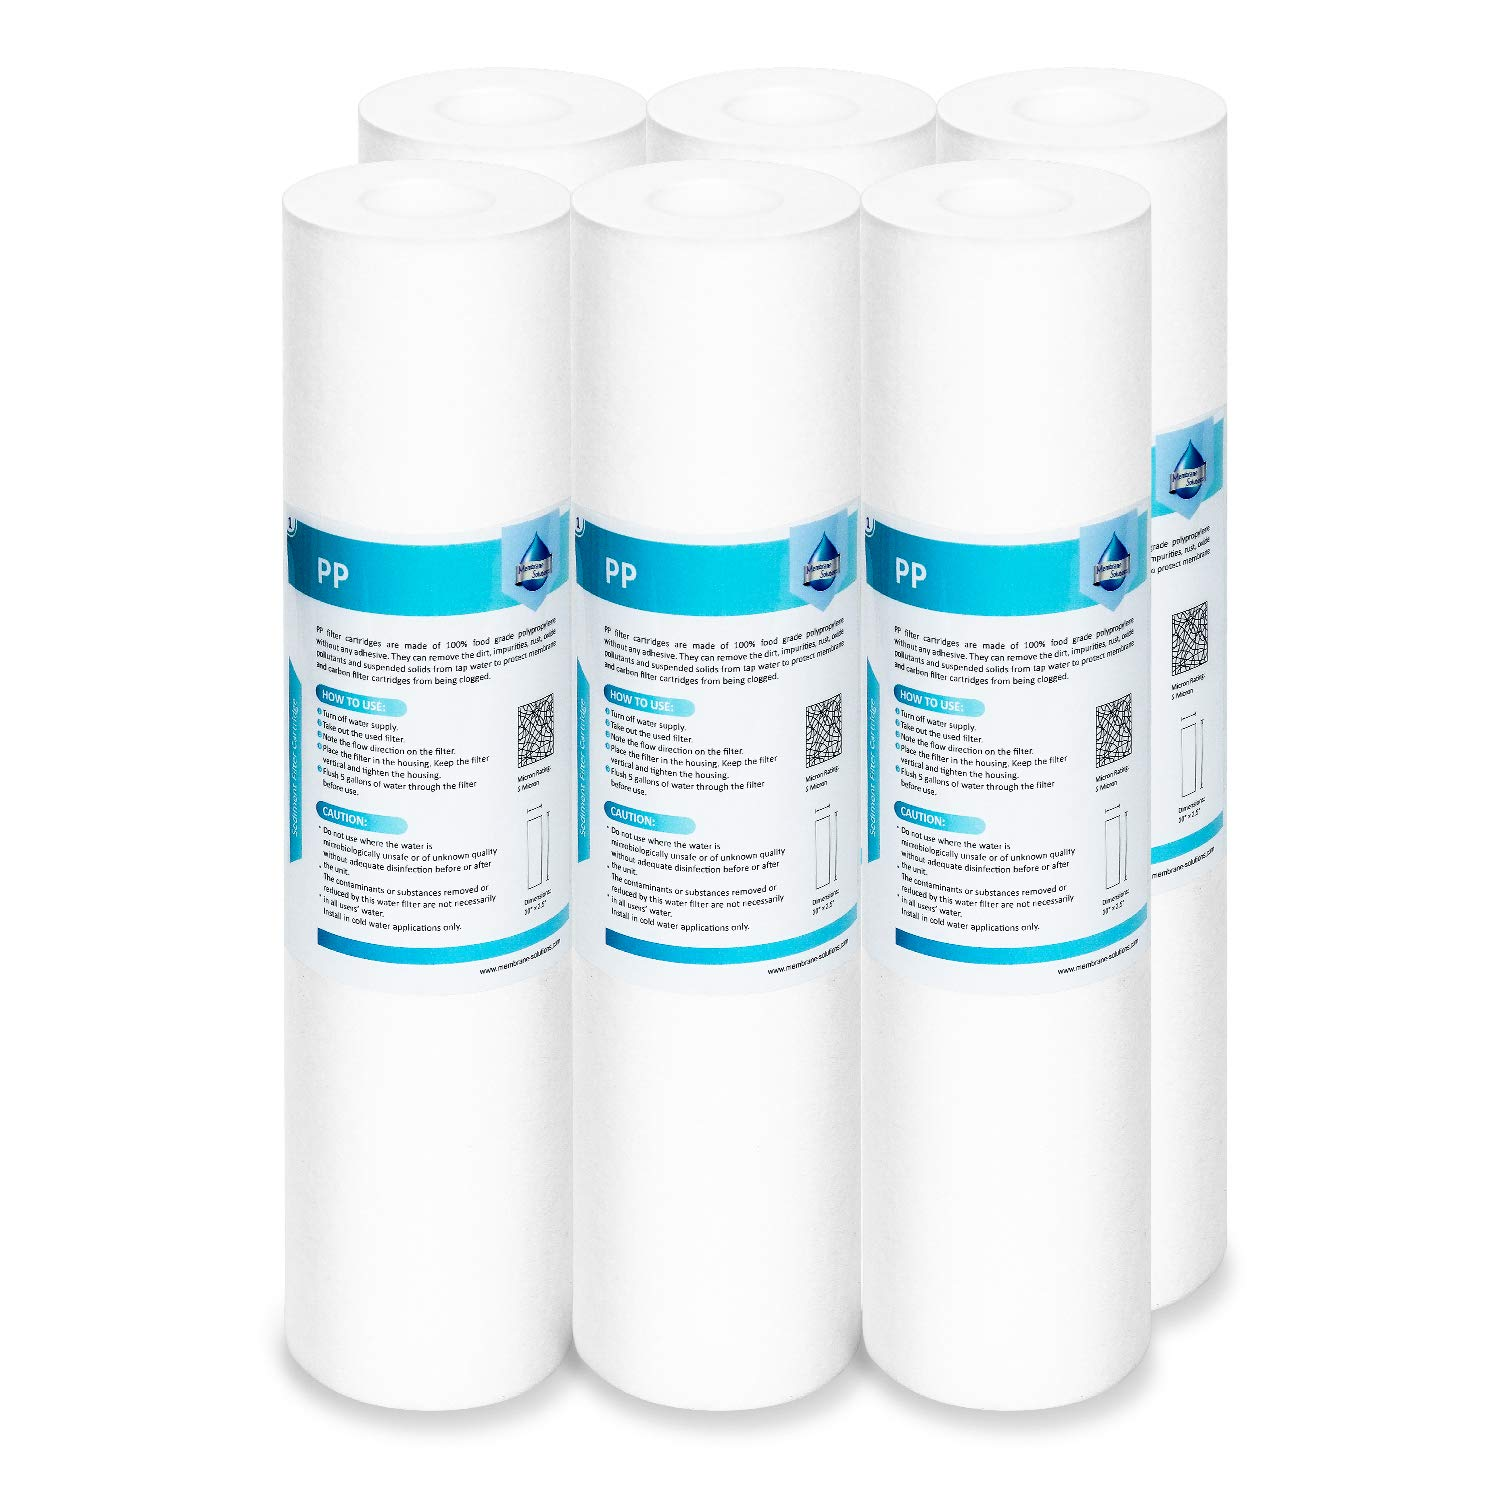 "Membrane Solutions 20 Micron Sediment Water Filter Replacement Polypropylene Cartridge 10""x 2.5"" for Whole House RO System, Compatible with Aqua-Pure AP110, GE FXUSC,WHKF-GD05,Culligan P5-6 Pack"